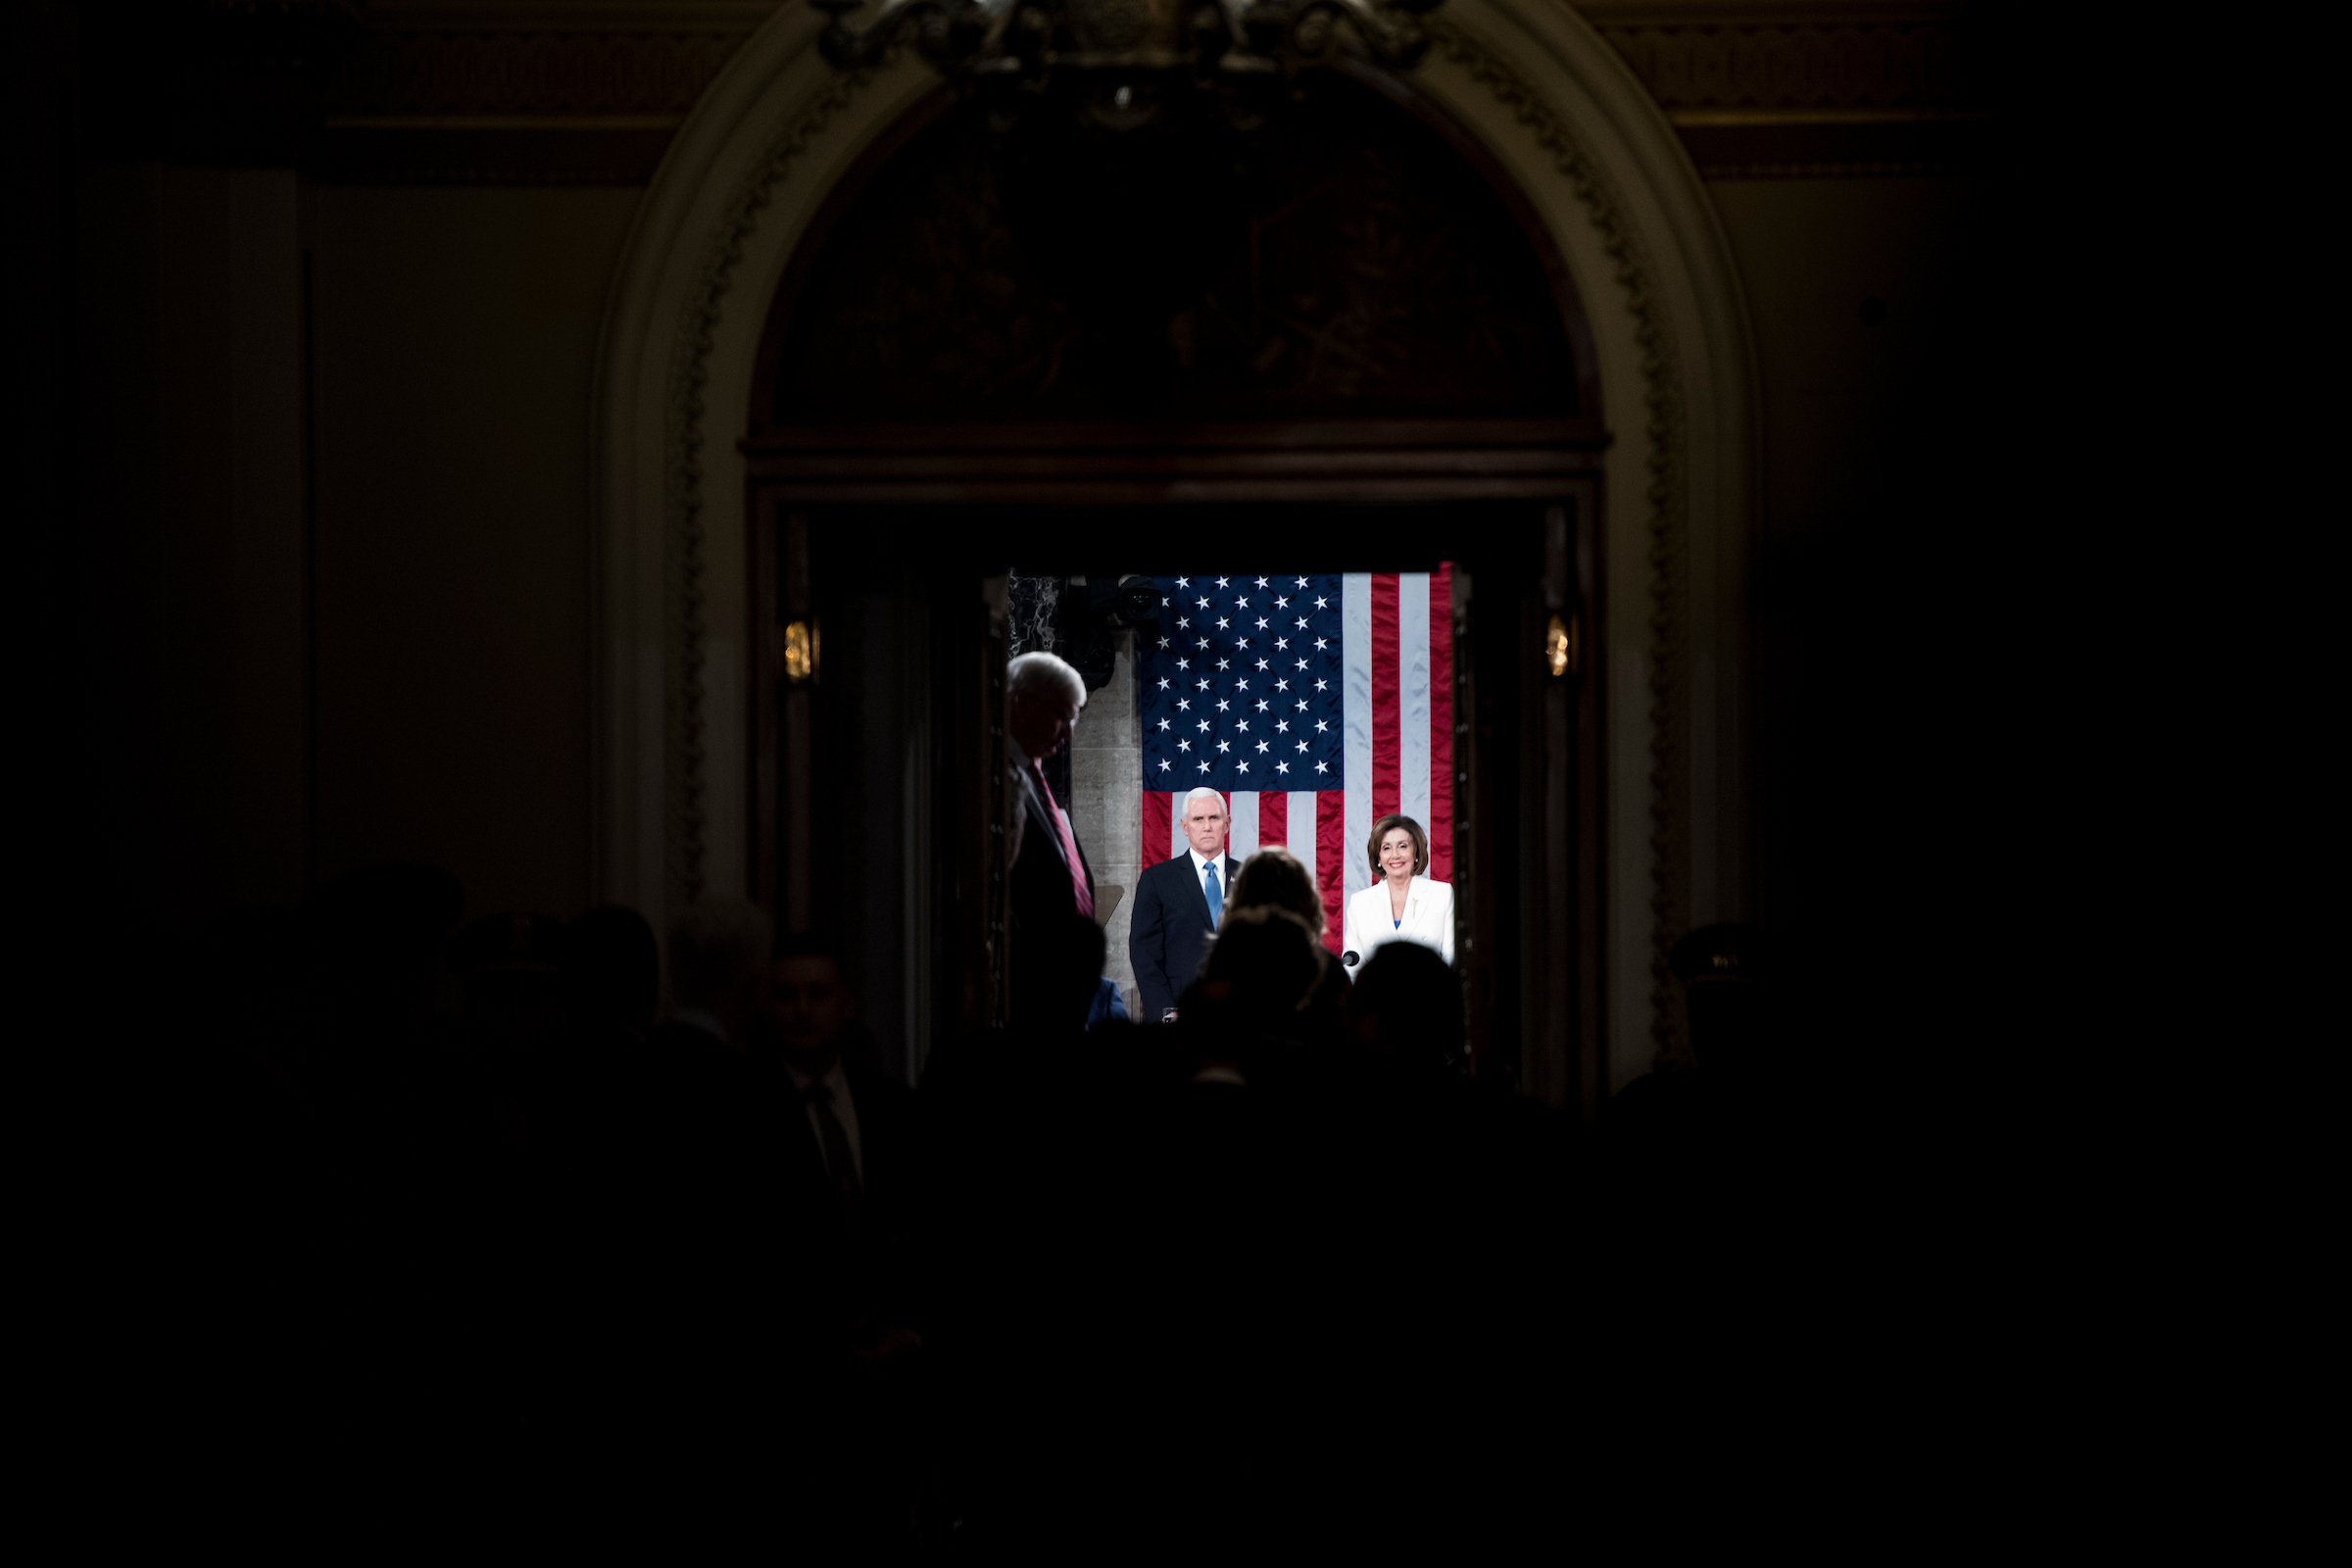 UNITED STATES - FEBRUARY 04: Vice President Mike Pence and Speaker of the House Nancy Pelosi, D-Calif., wait for President Donald Trump to arrive in the House chamber before the start of Trump's State of the Union address on Tuesday, February 4, 2020. (Photo By Bill Clark/CQ Roll Call)